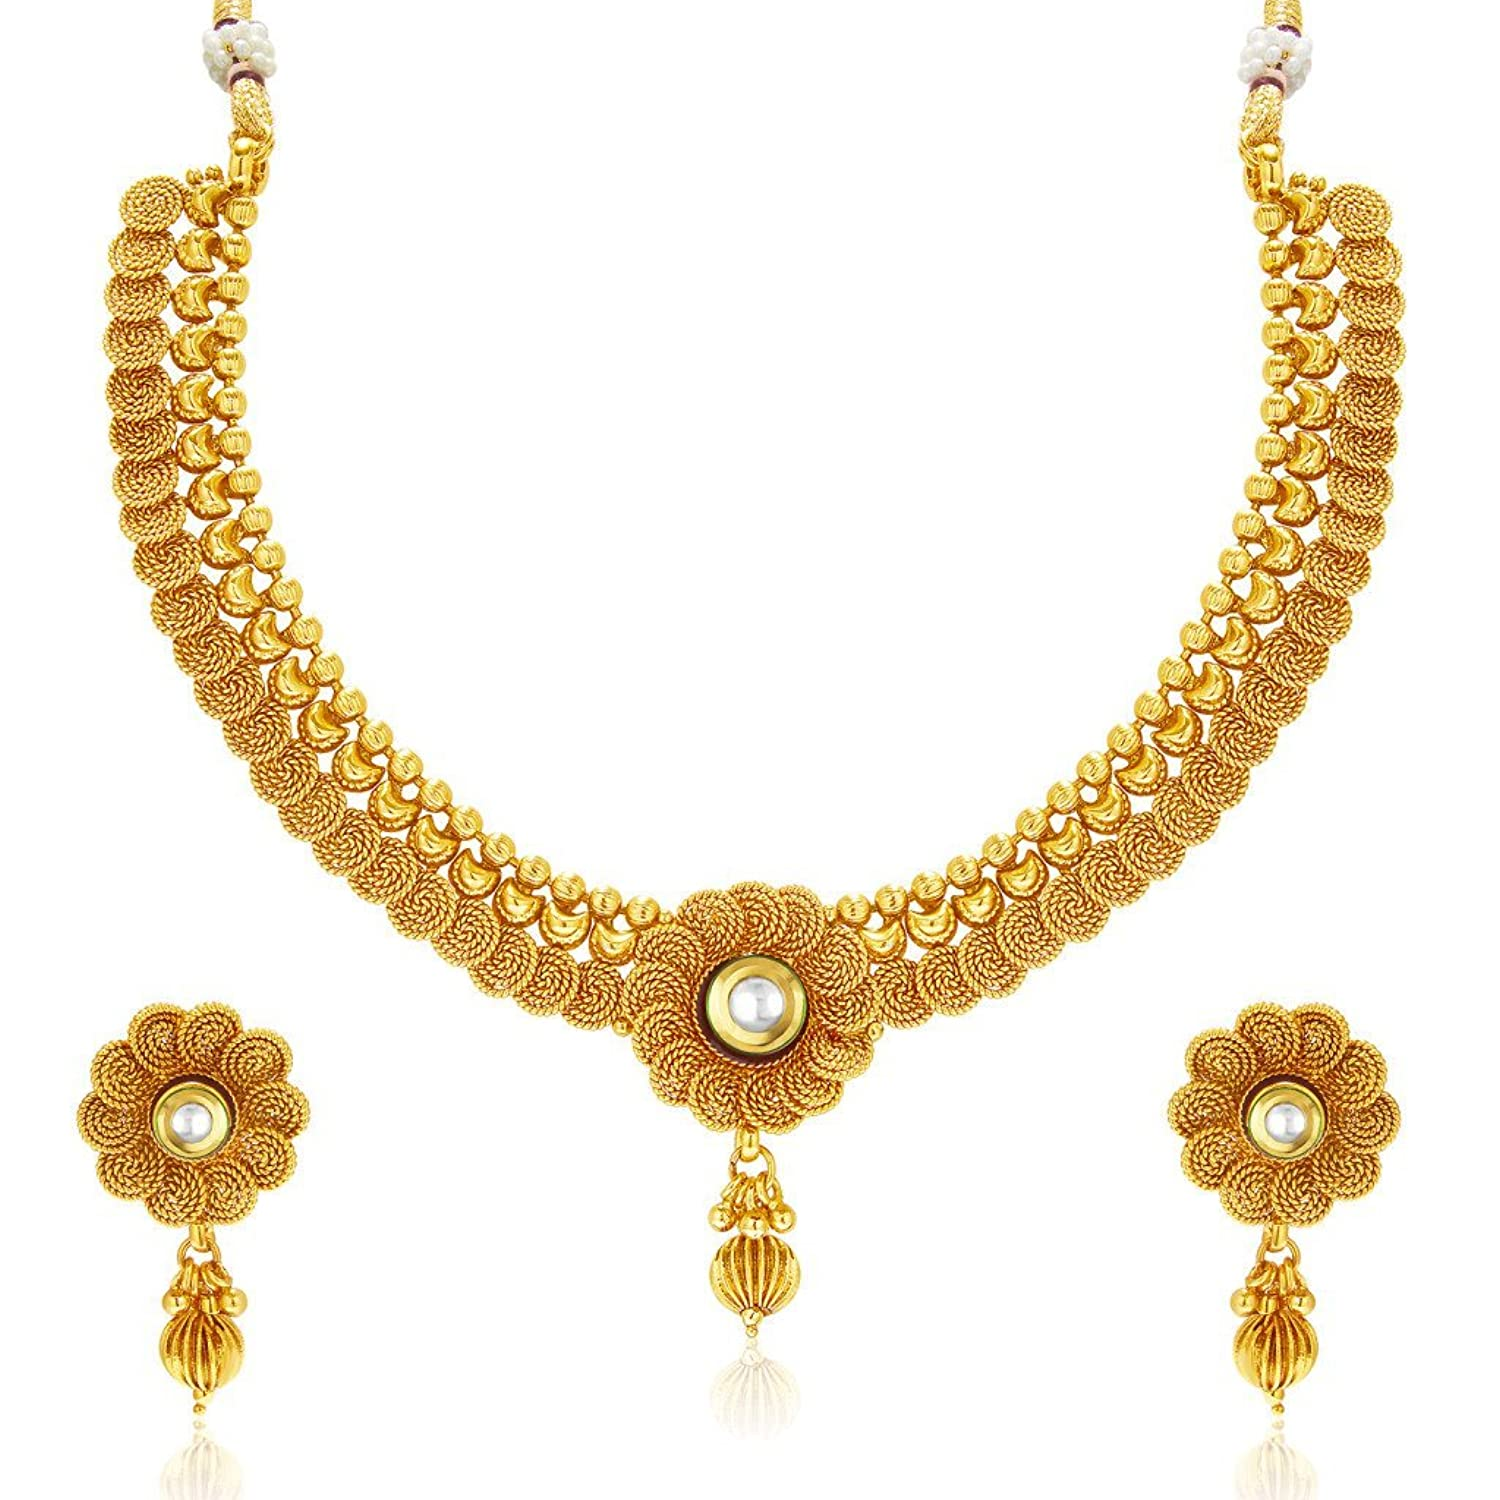 Gold necklace designs with price in rupees jewelry gallery - Buy Sukkhi Eye Catchy Jalebi Design Gold Plated Necklace Set For Women Online At Low Prices In India Amazon Jewellery Store Amazon In